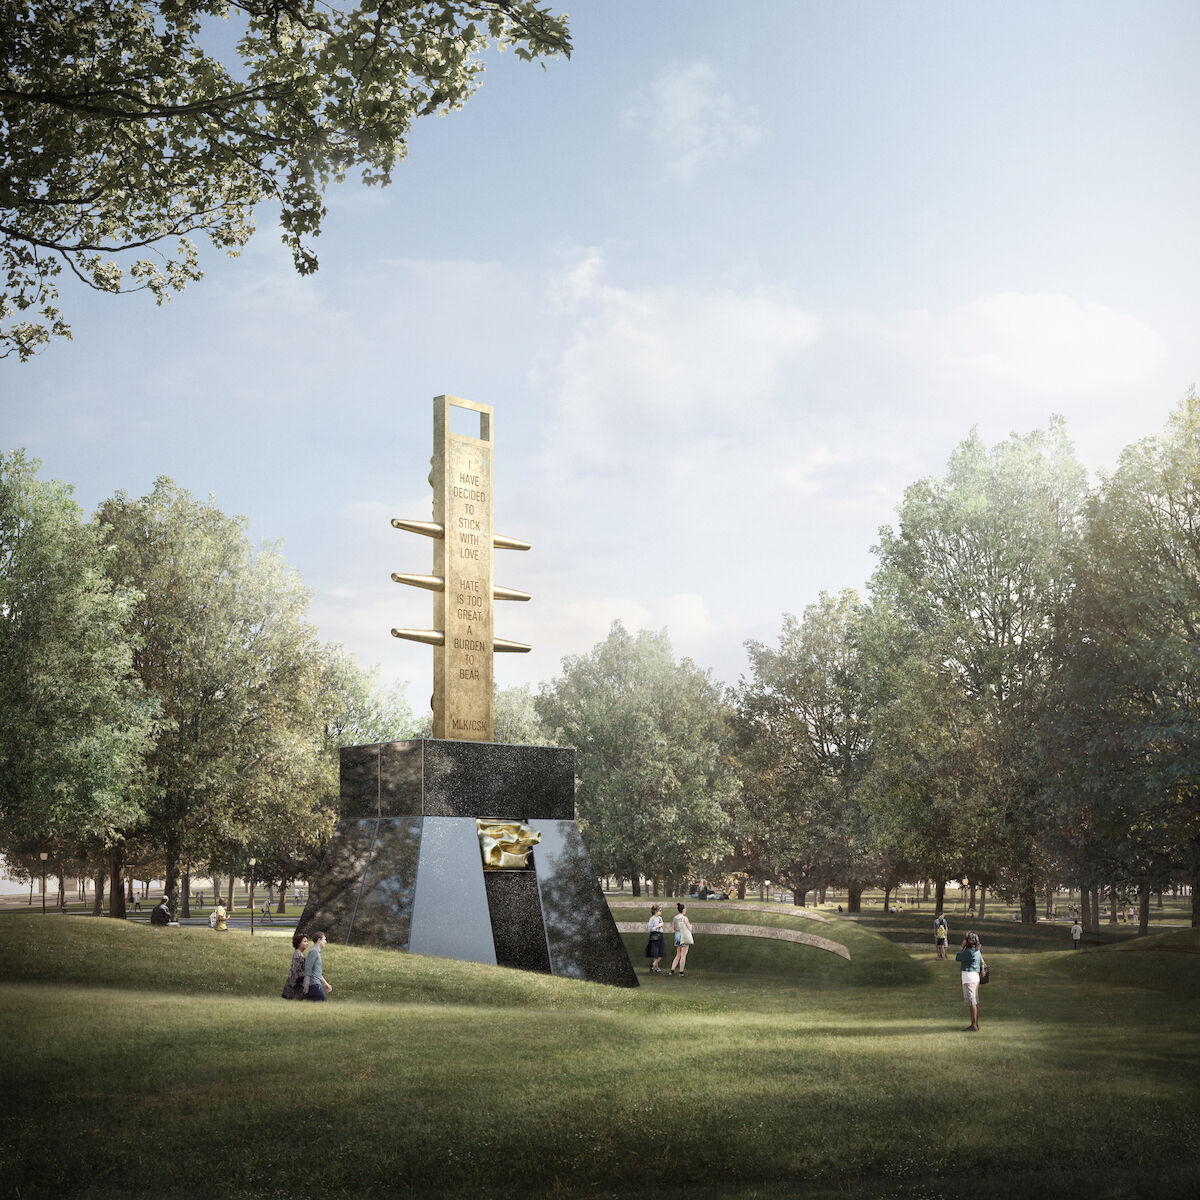 A rendering of Barbara Chase-Riboud's proposed memorial. Courtesy MLK Boston.